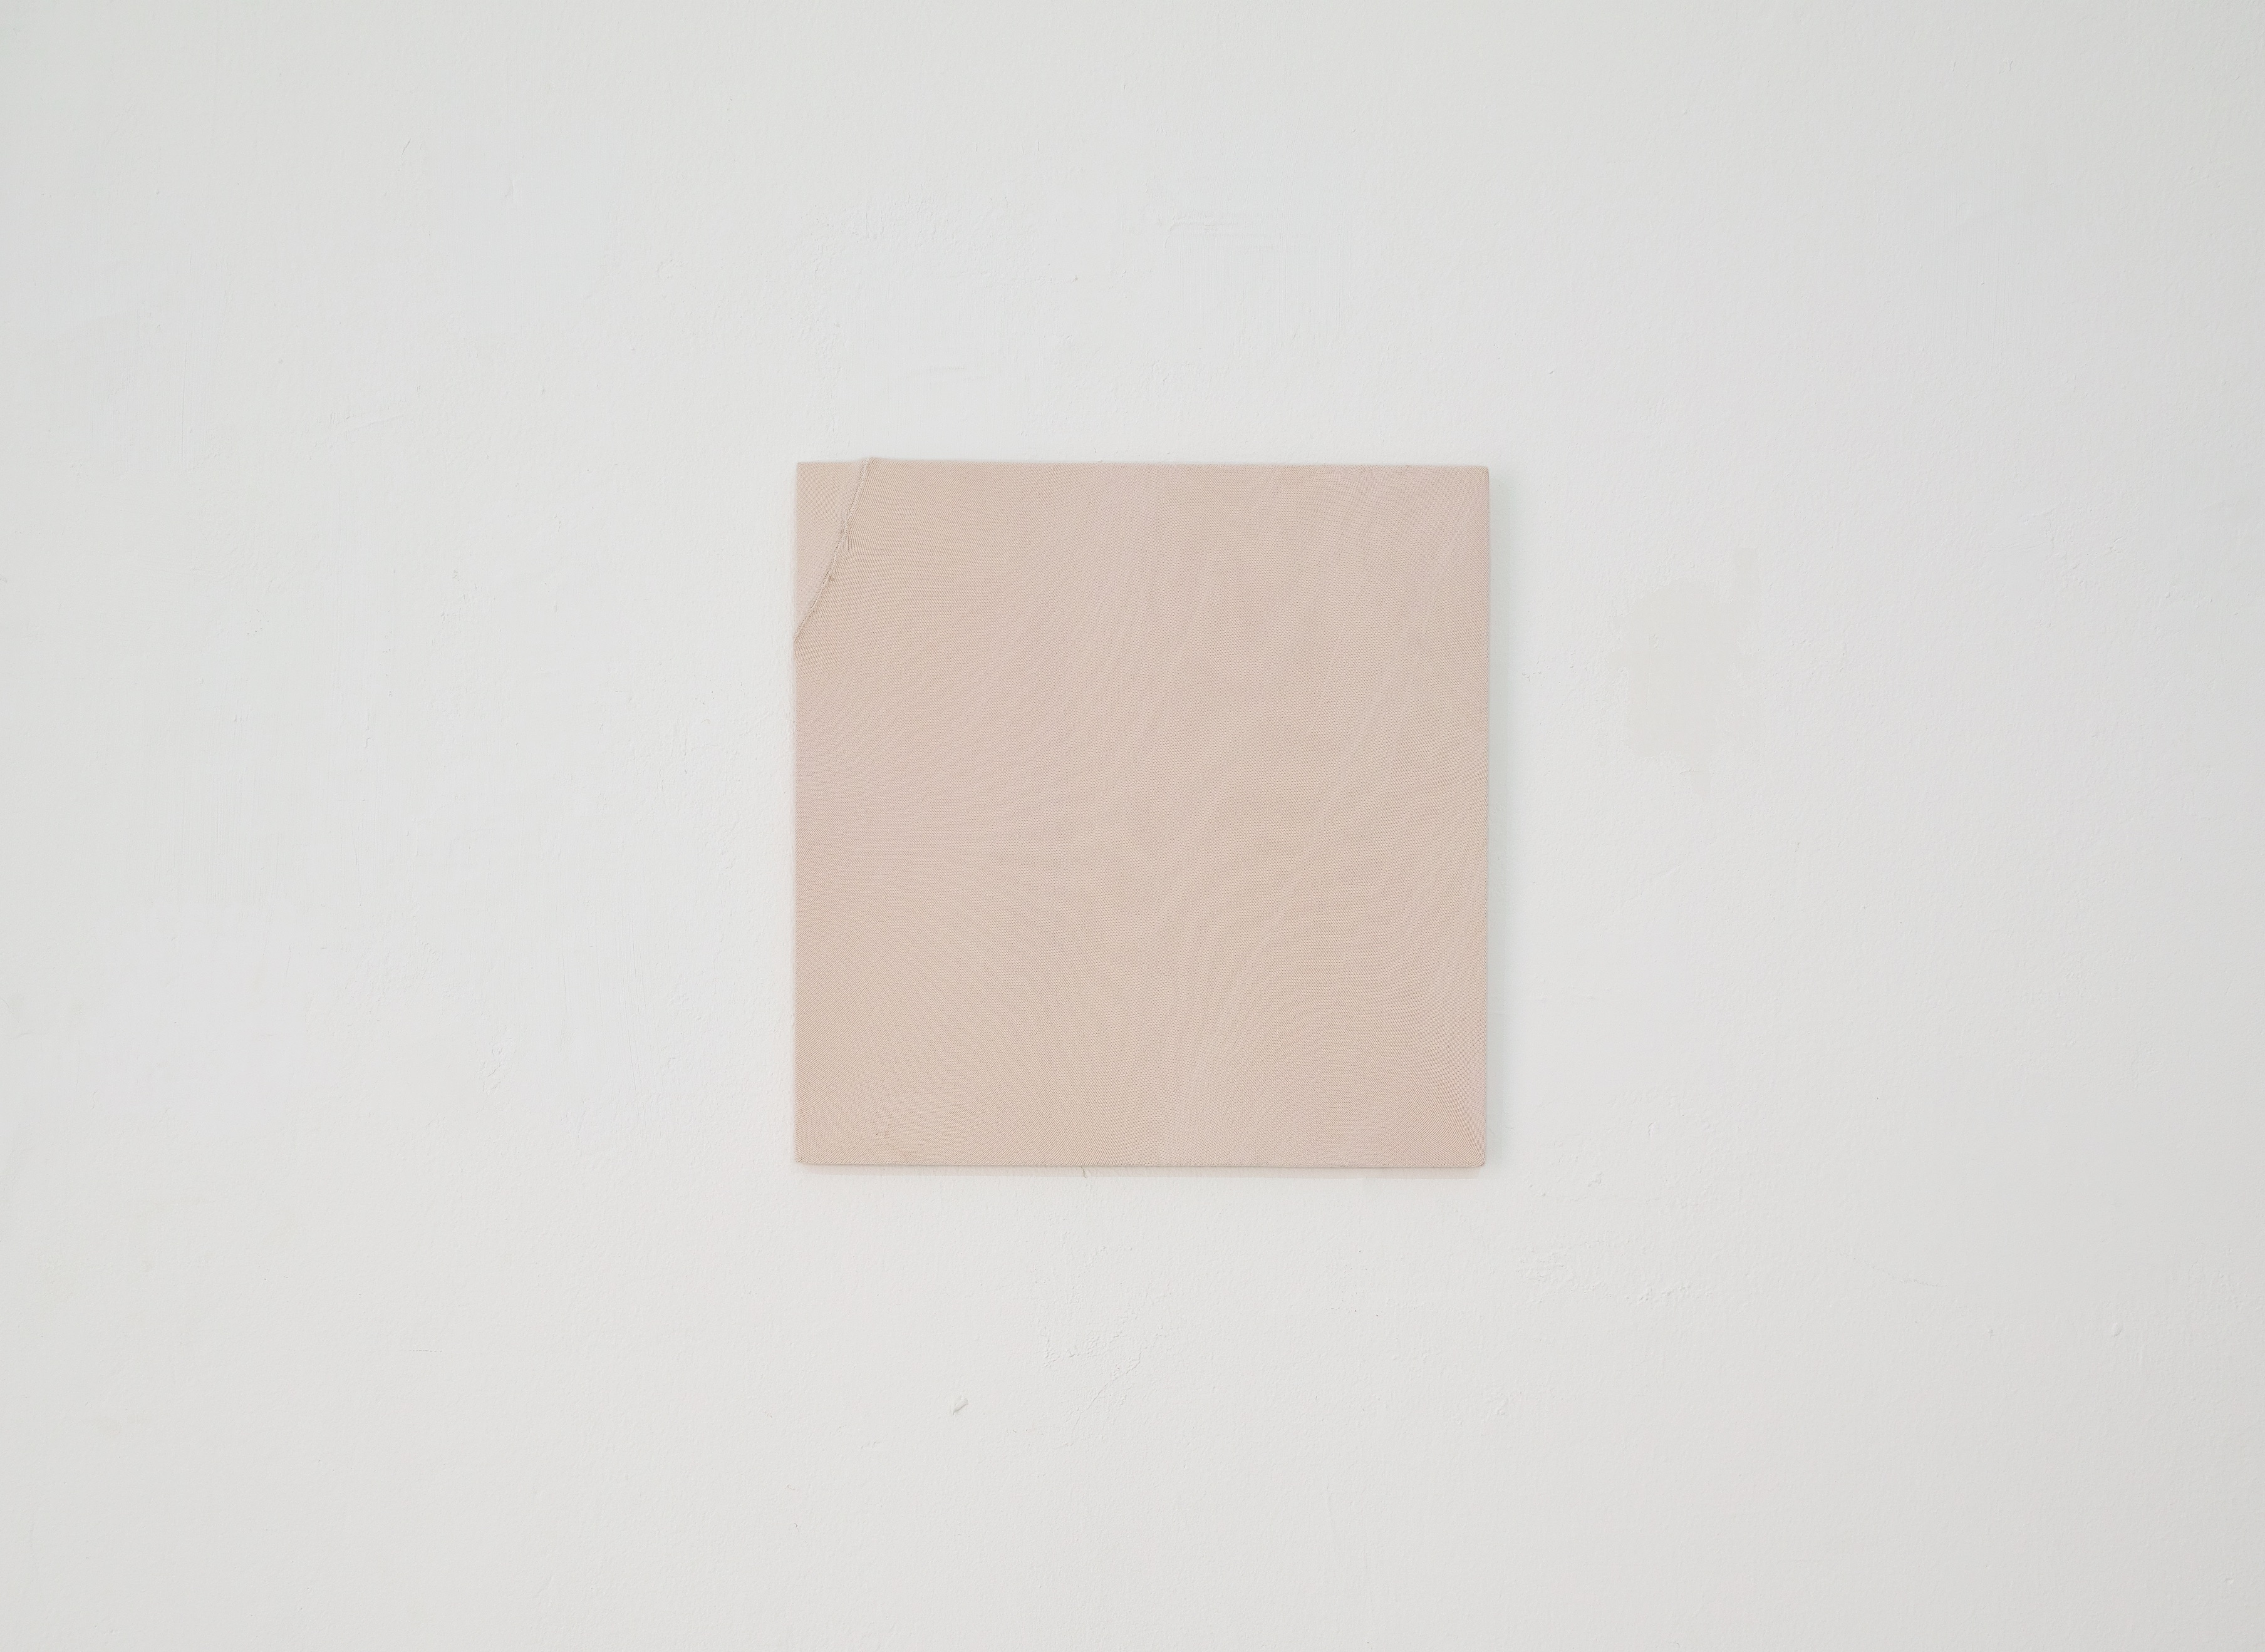 Diversions Series (#4), 2017, Found knit fabric on plywood, 40×40cm